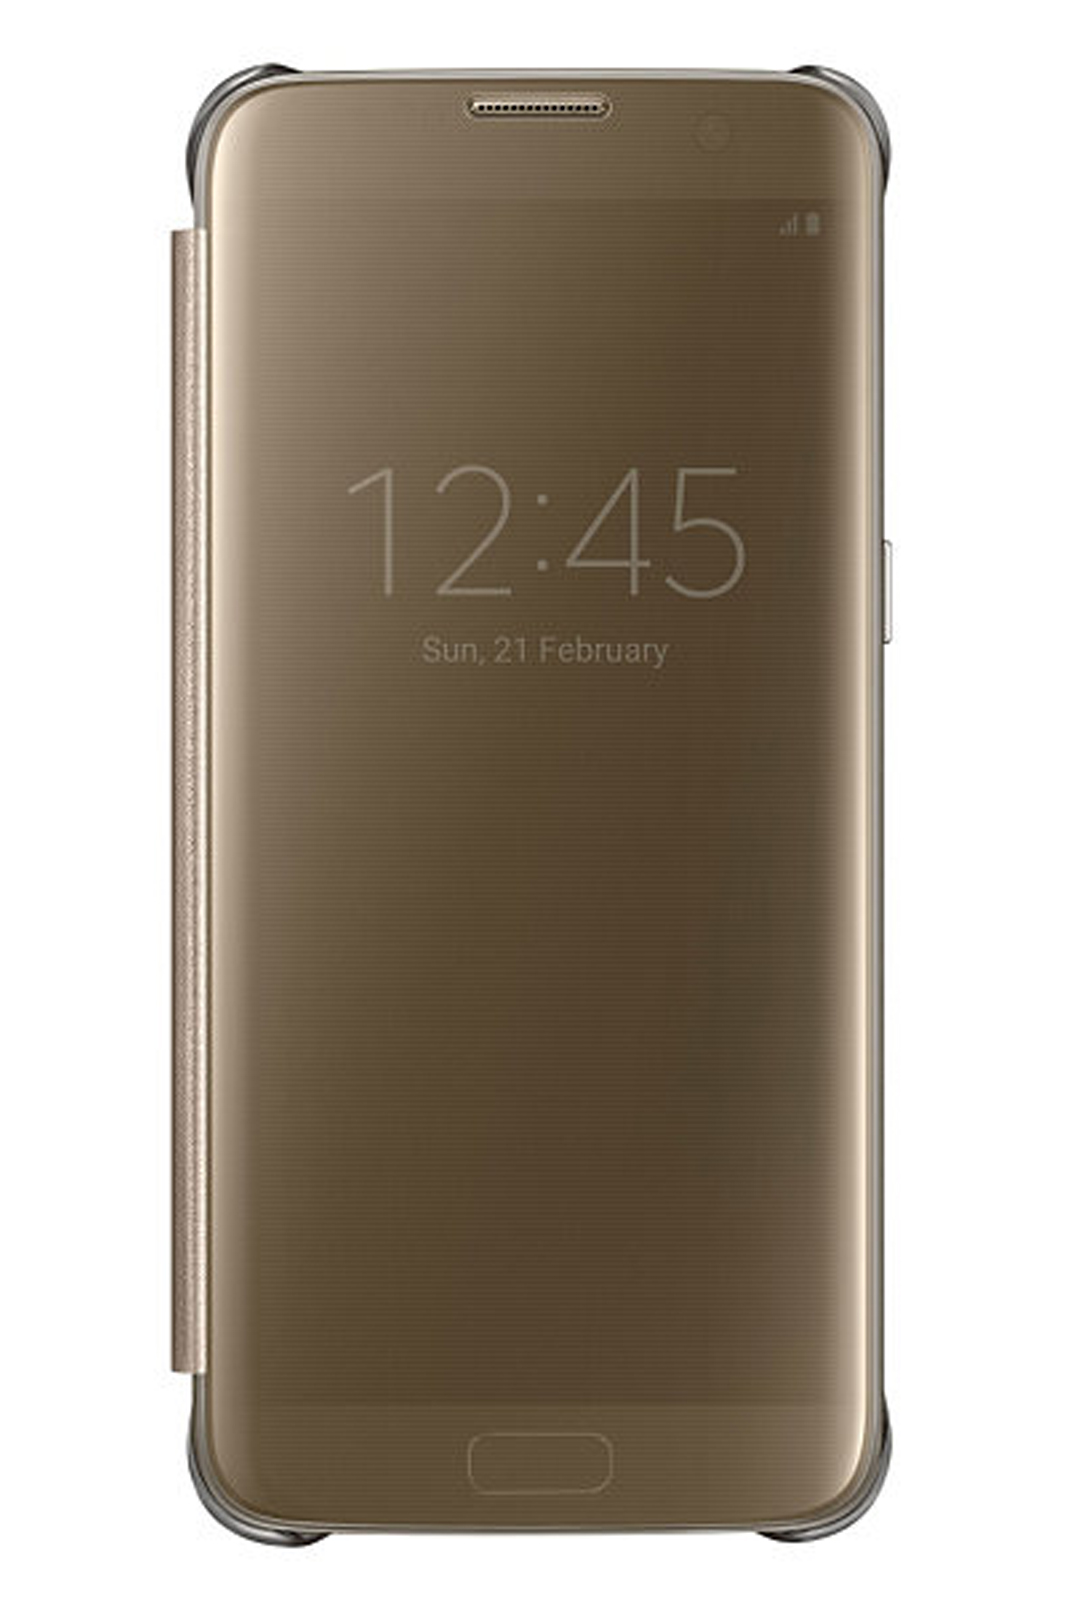 outlet store 7489c d2e66 Details about Official Samsung Galaxy S7 Edge Gold Clear View Cover / Case  - EF-ZG935CFEGWW